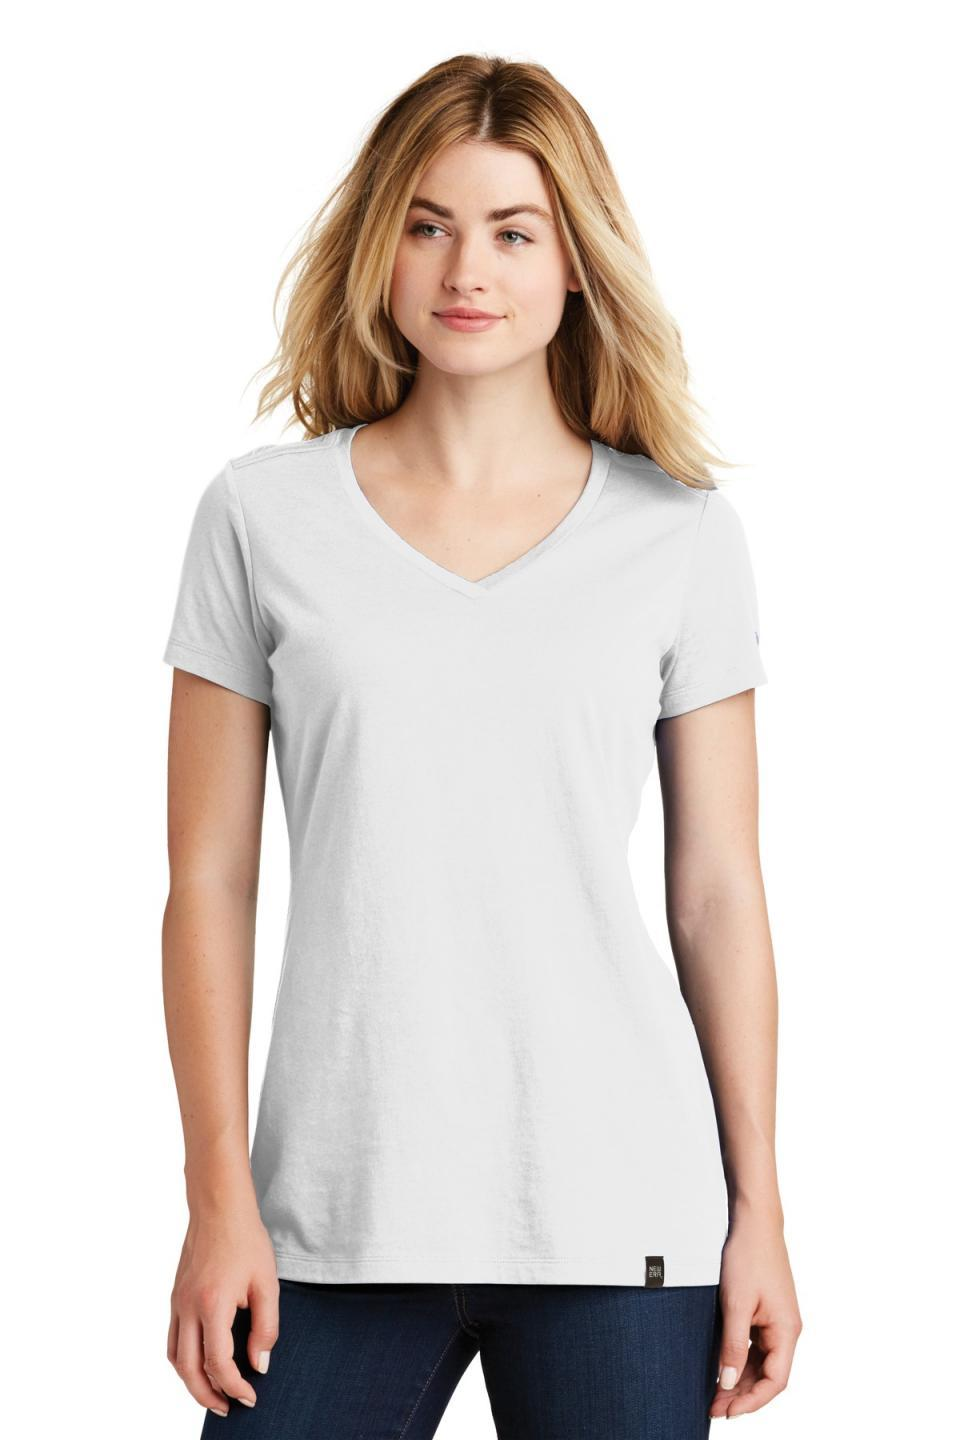 New Era Women's Heritage Blend V-Neck Tee